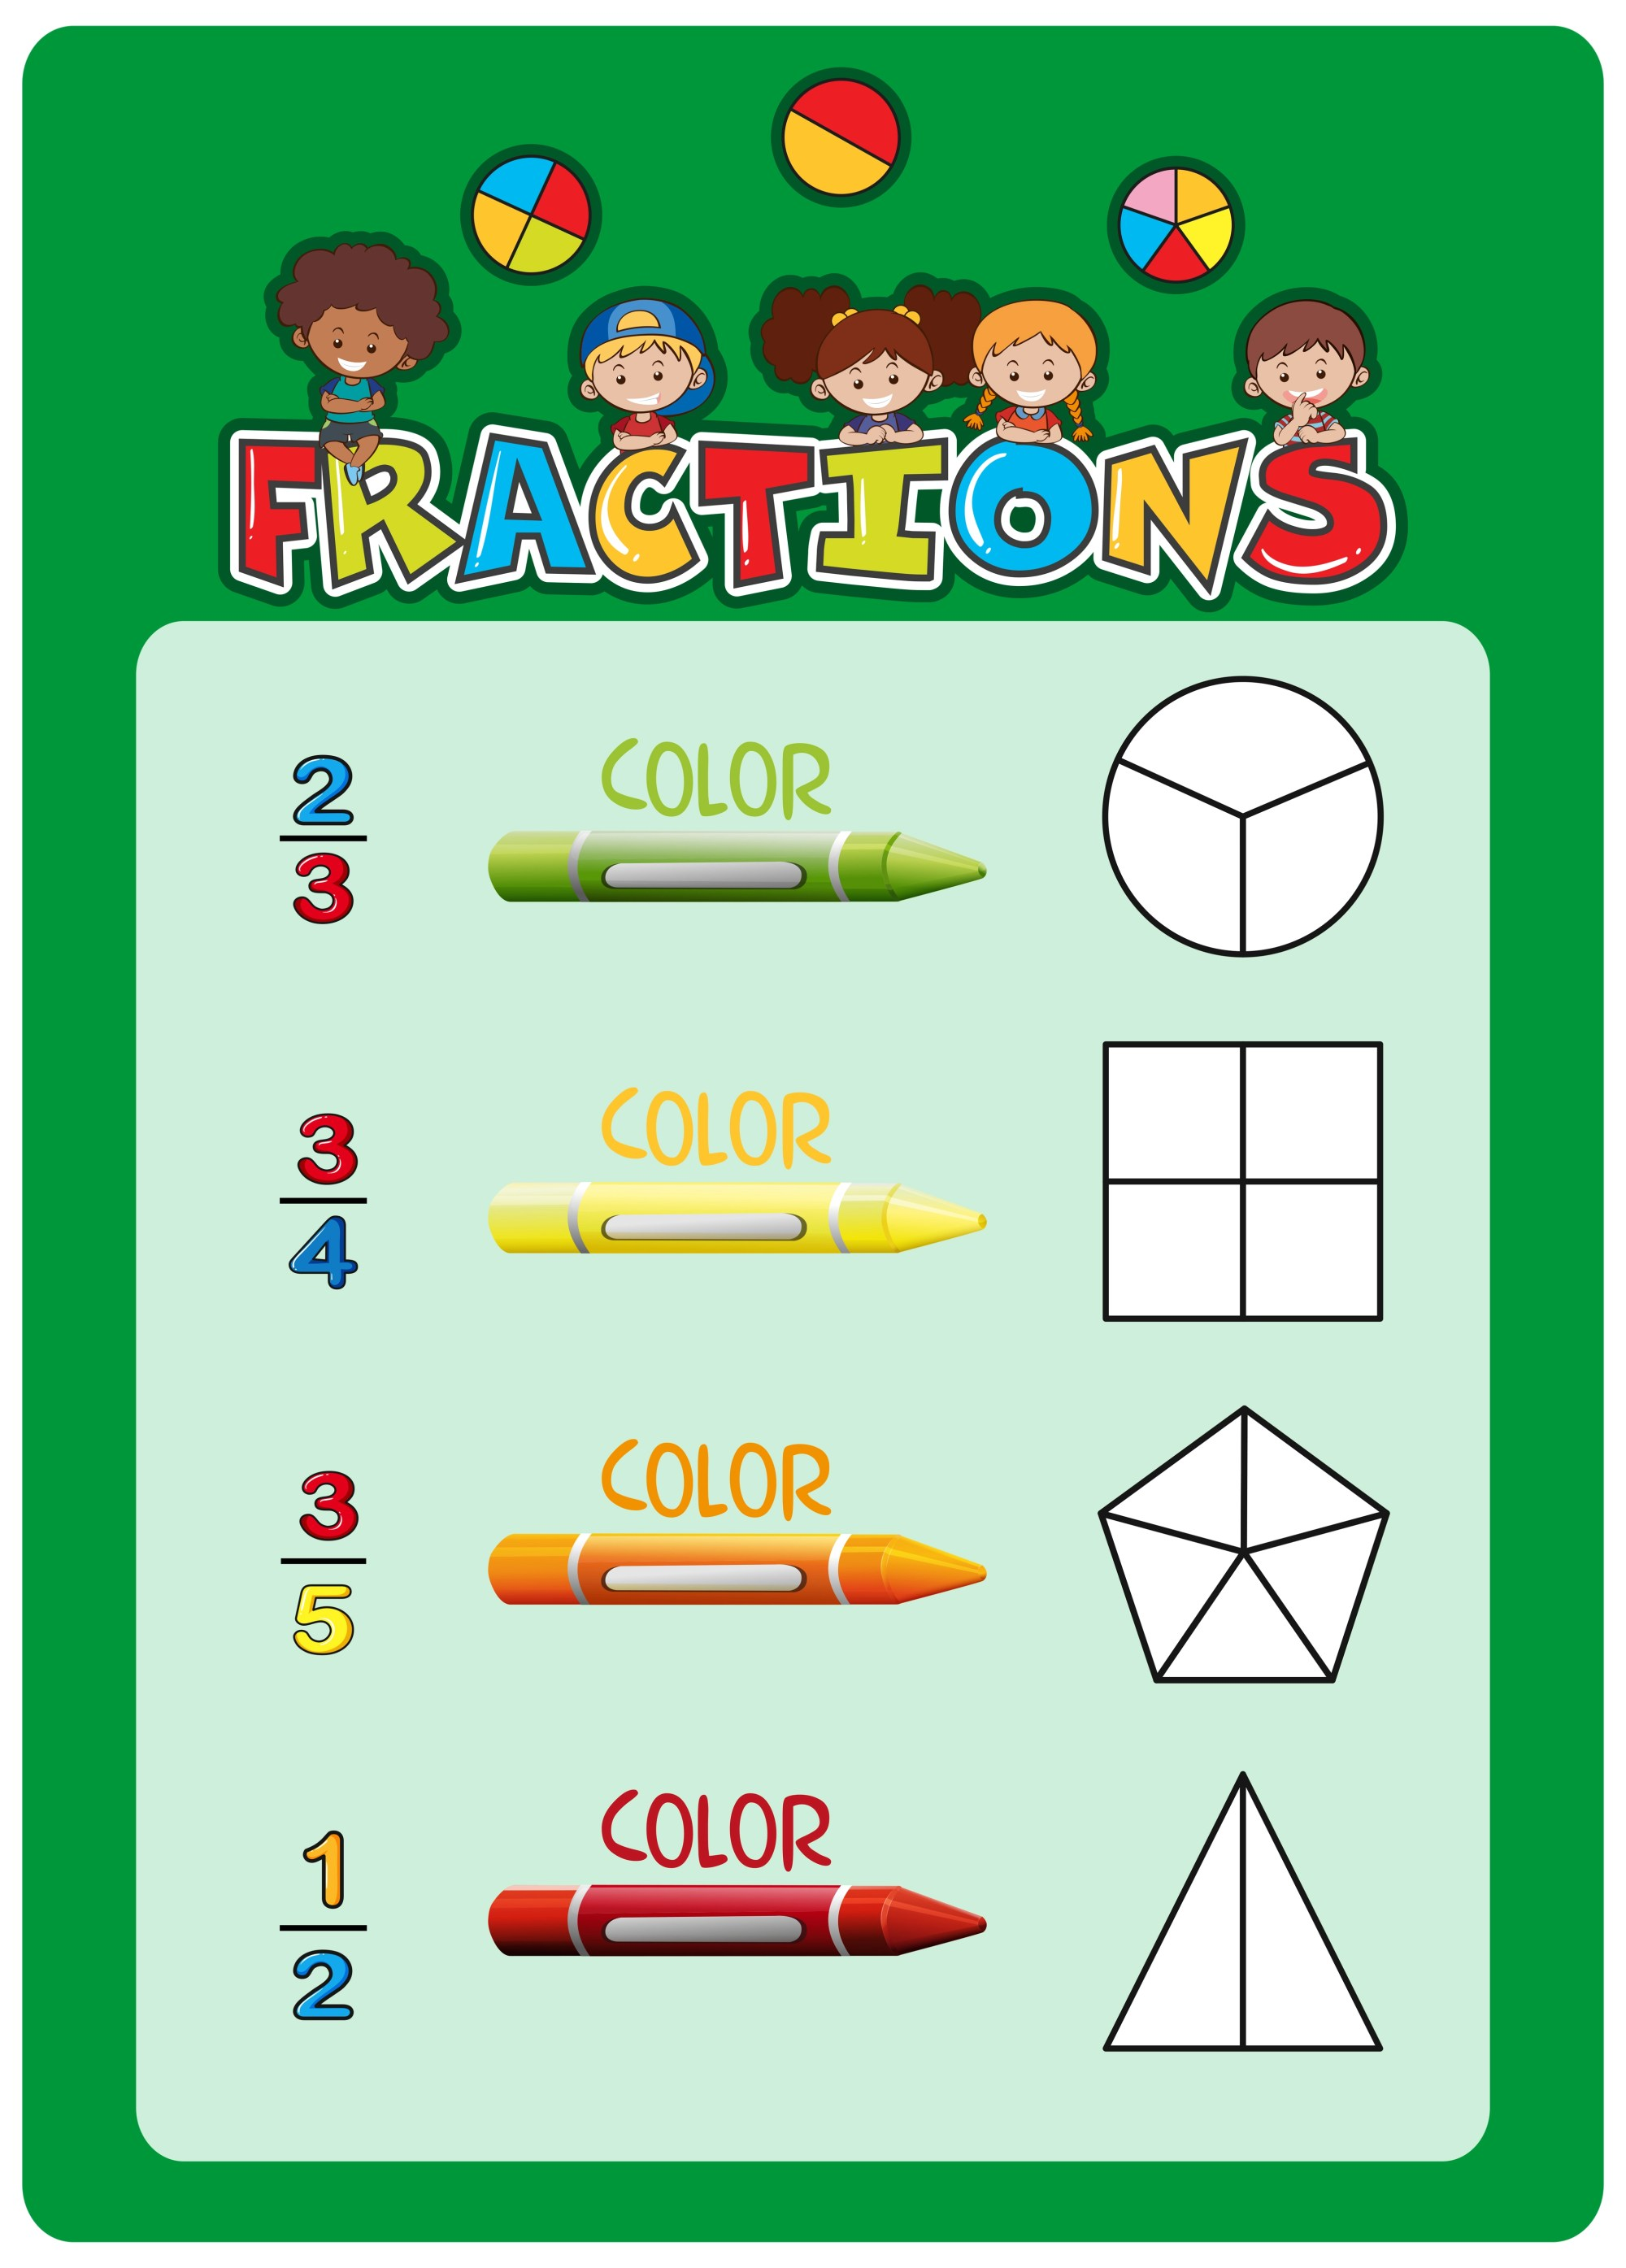 hight resolution of Math fractions worksheet template - Download Free Vectors